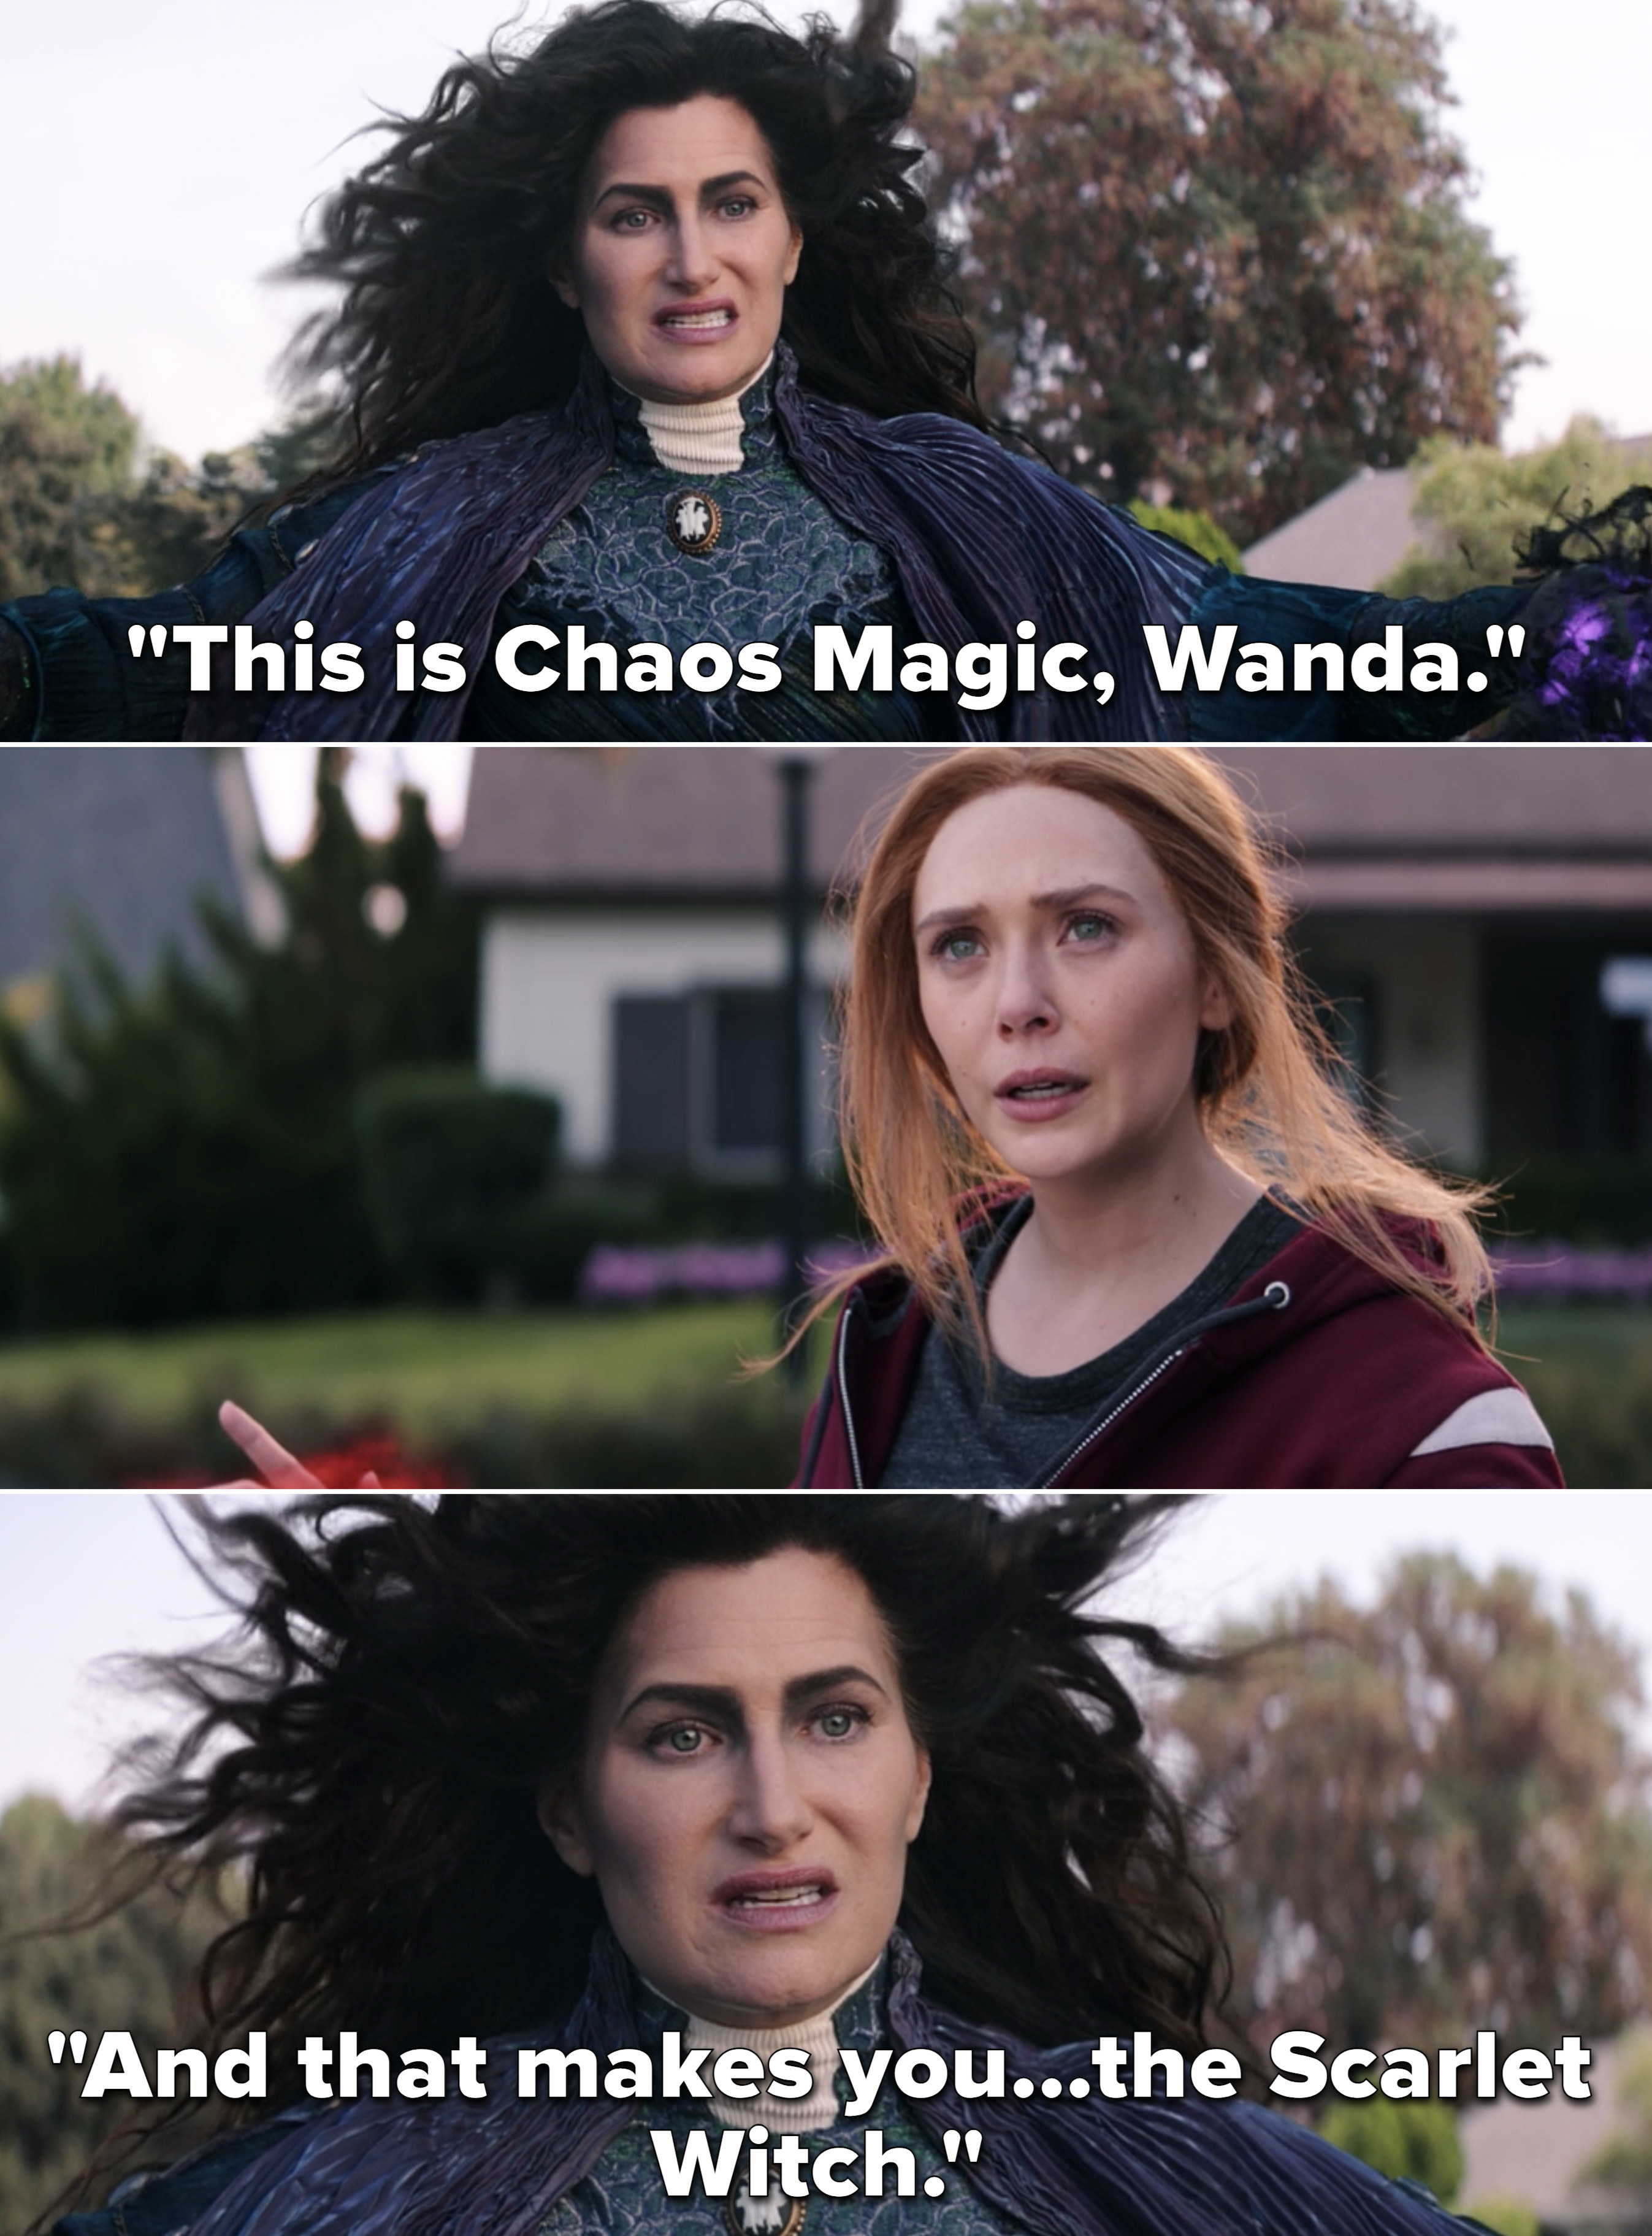 """Agatha telling Wanda, """"This is Chaos Magic, Wanda. And that makes you...the Scarlet Witch"""""""